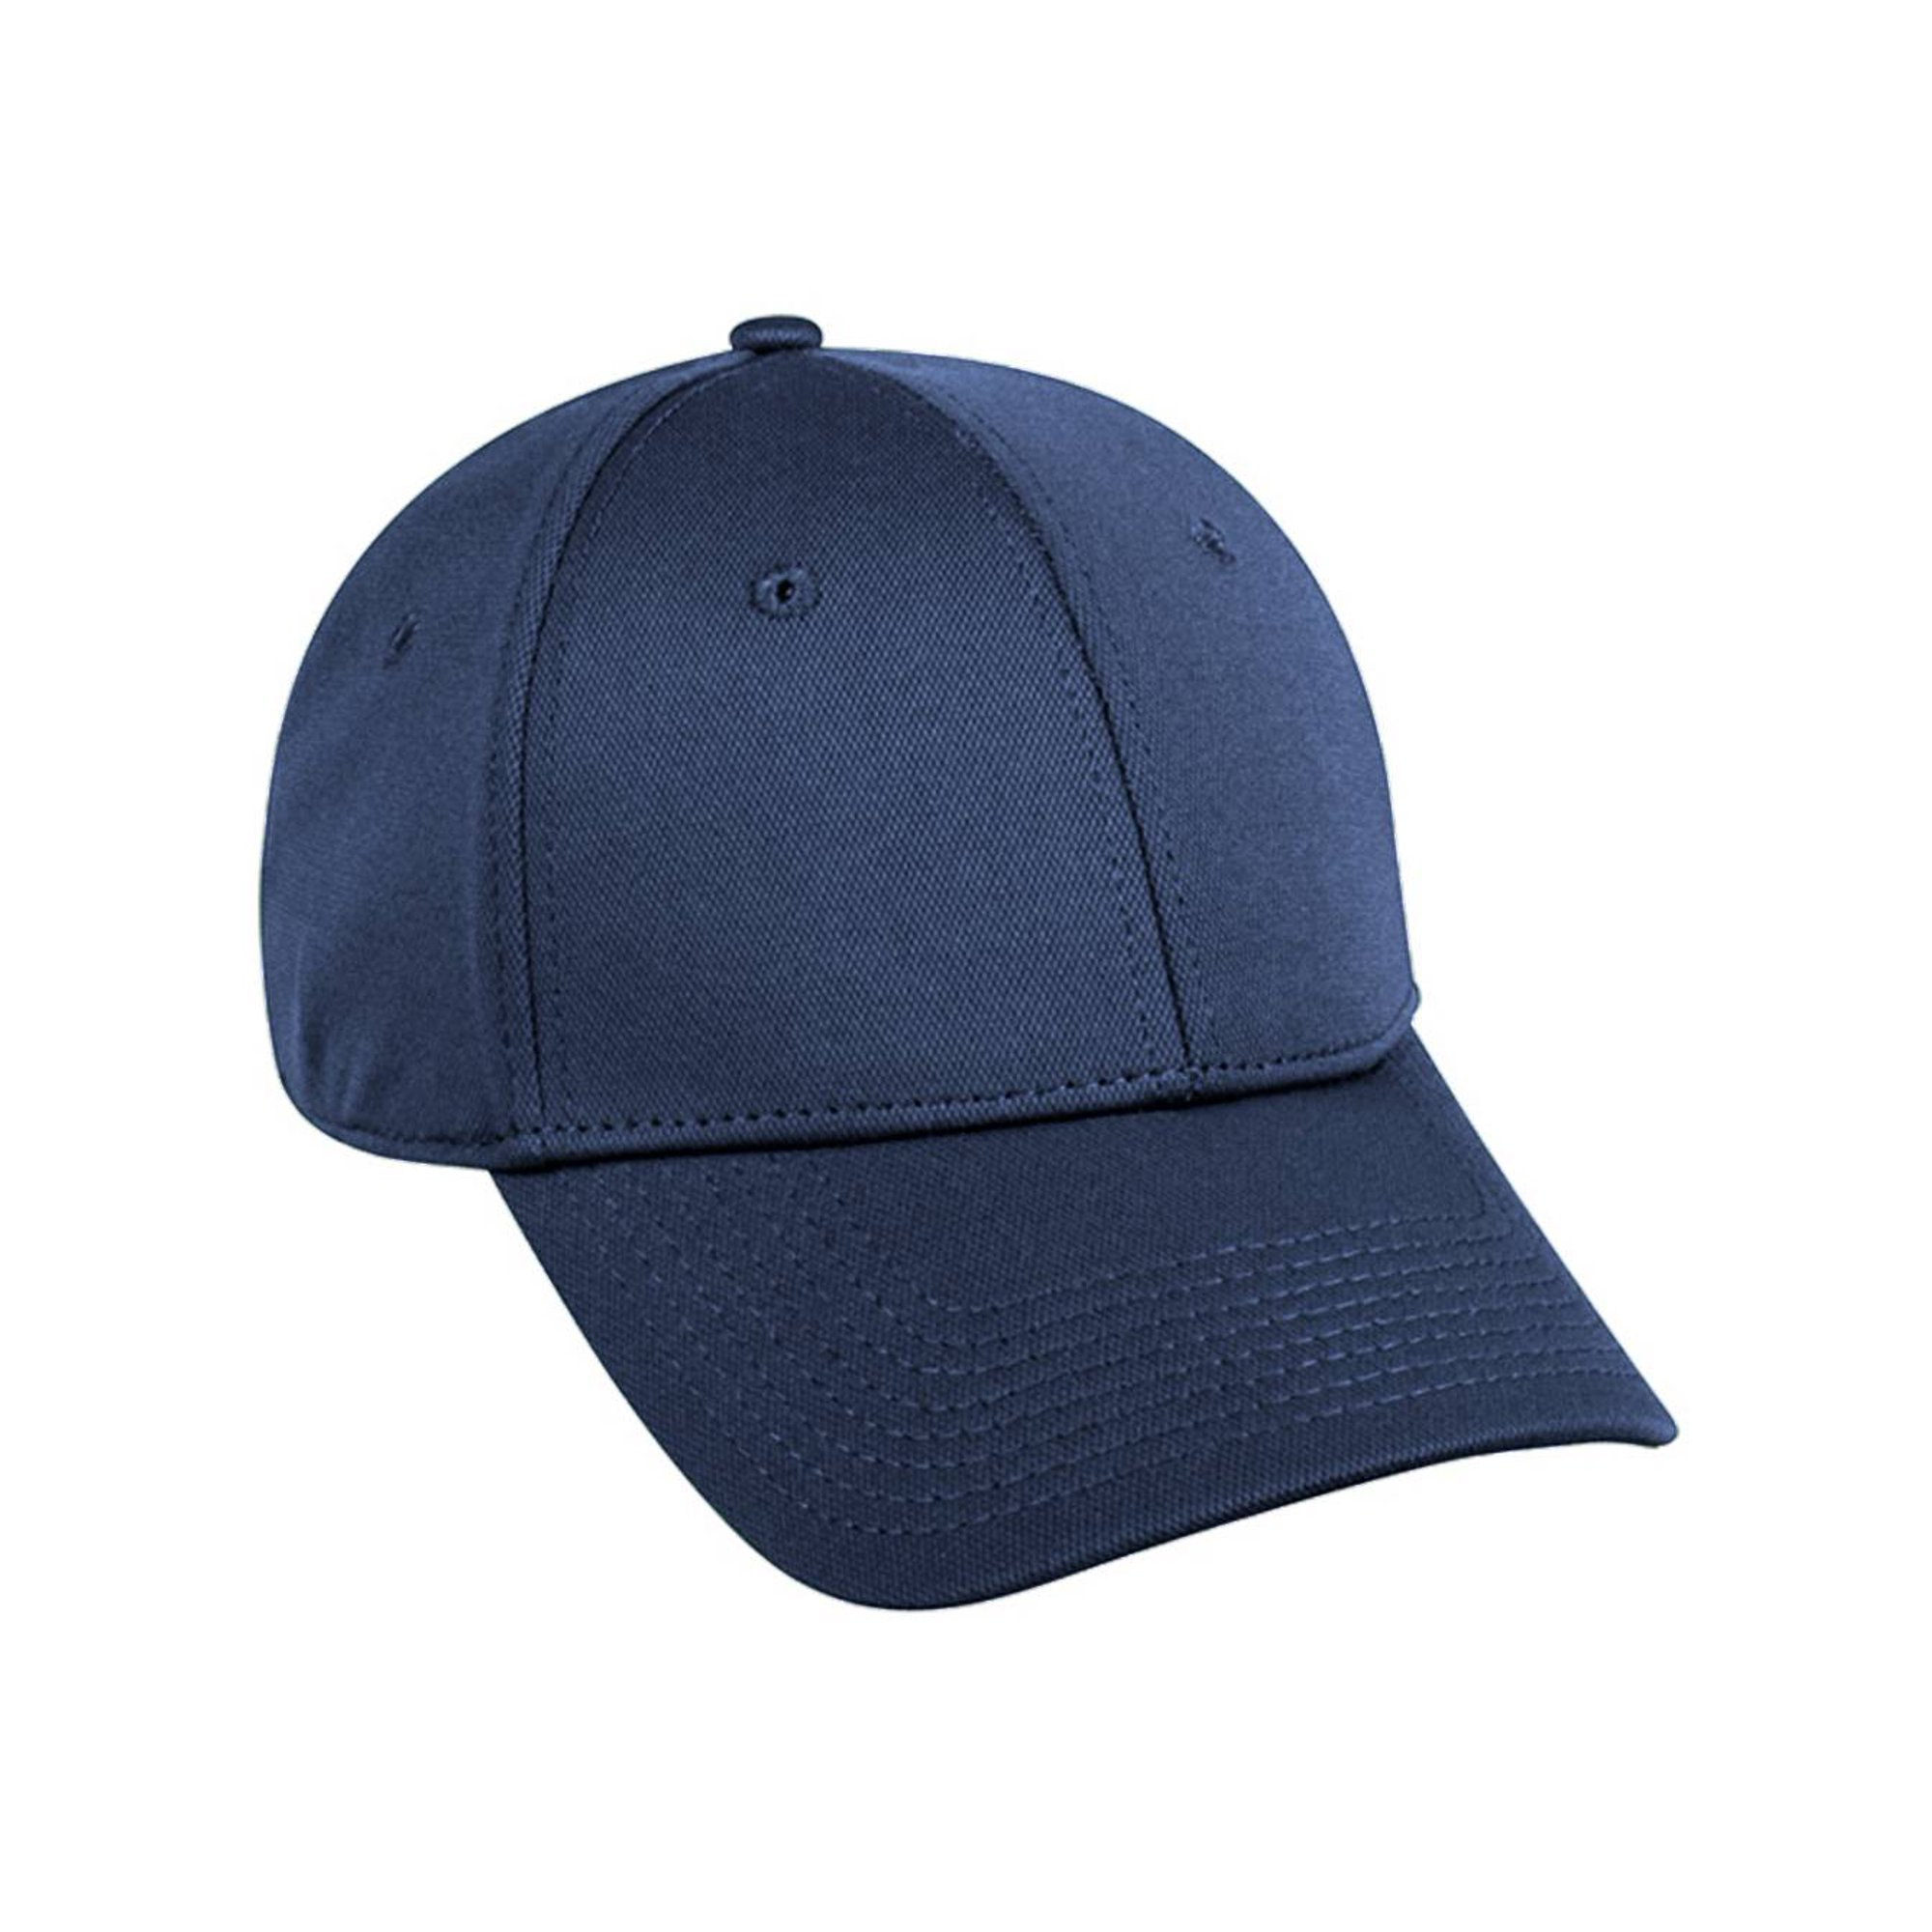 333804c7f64 New Fit All Flex Fit Hat Cap - (8 Different Colors) One Size Fits ...